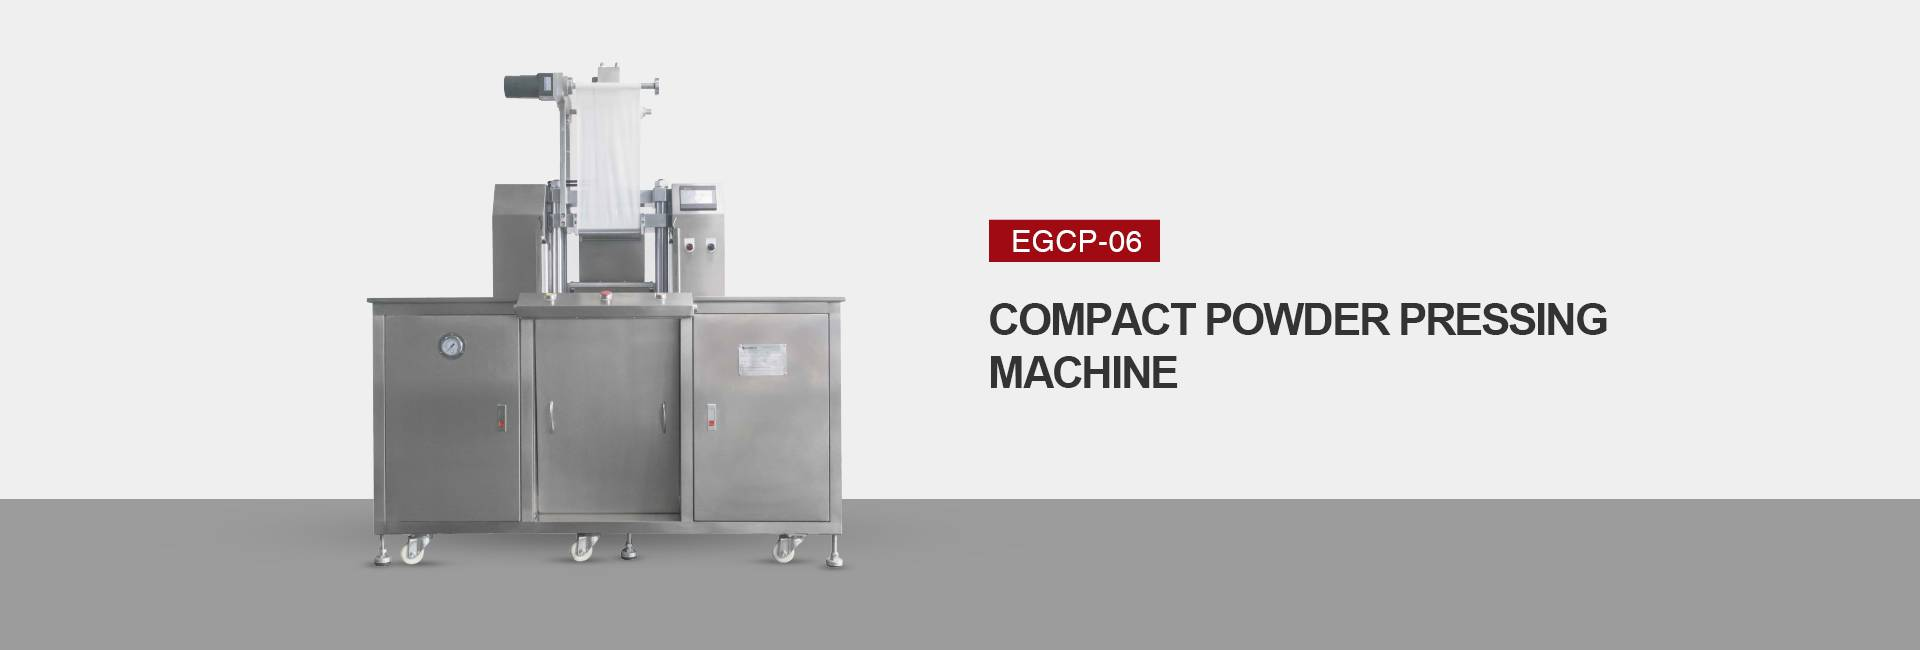 Compact Powder Pressing Machine